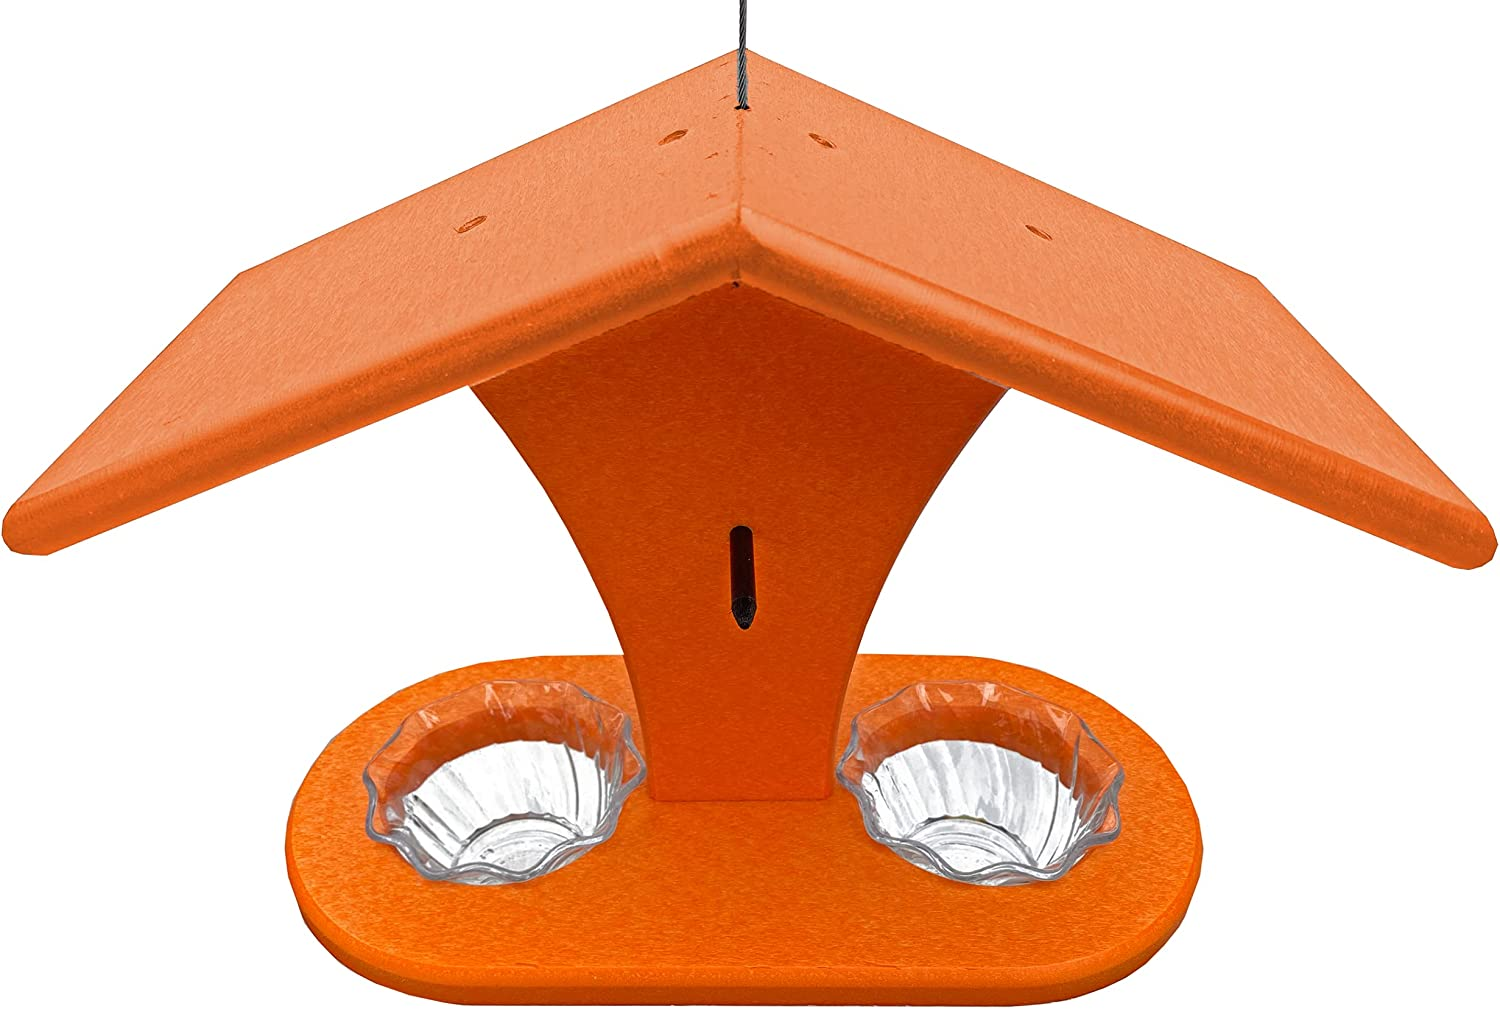 DutchCrafters Poly Weekly update Hanging Oriole Bird Orange Super beauty product restock quality top! 2 Slic Feeder with